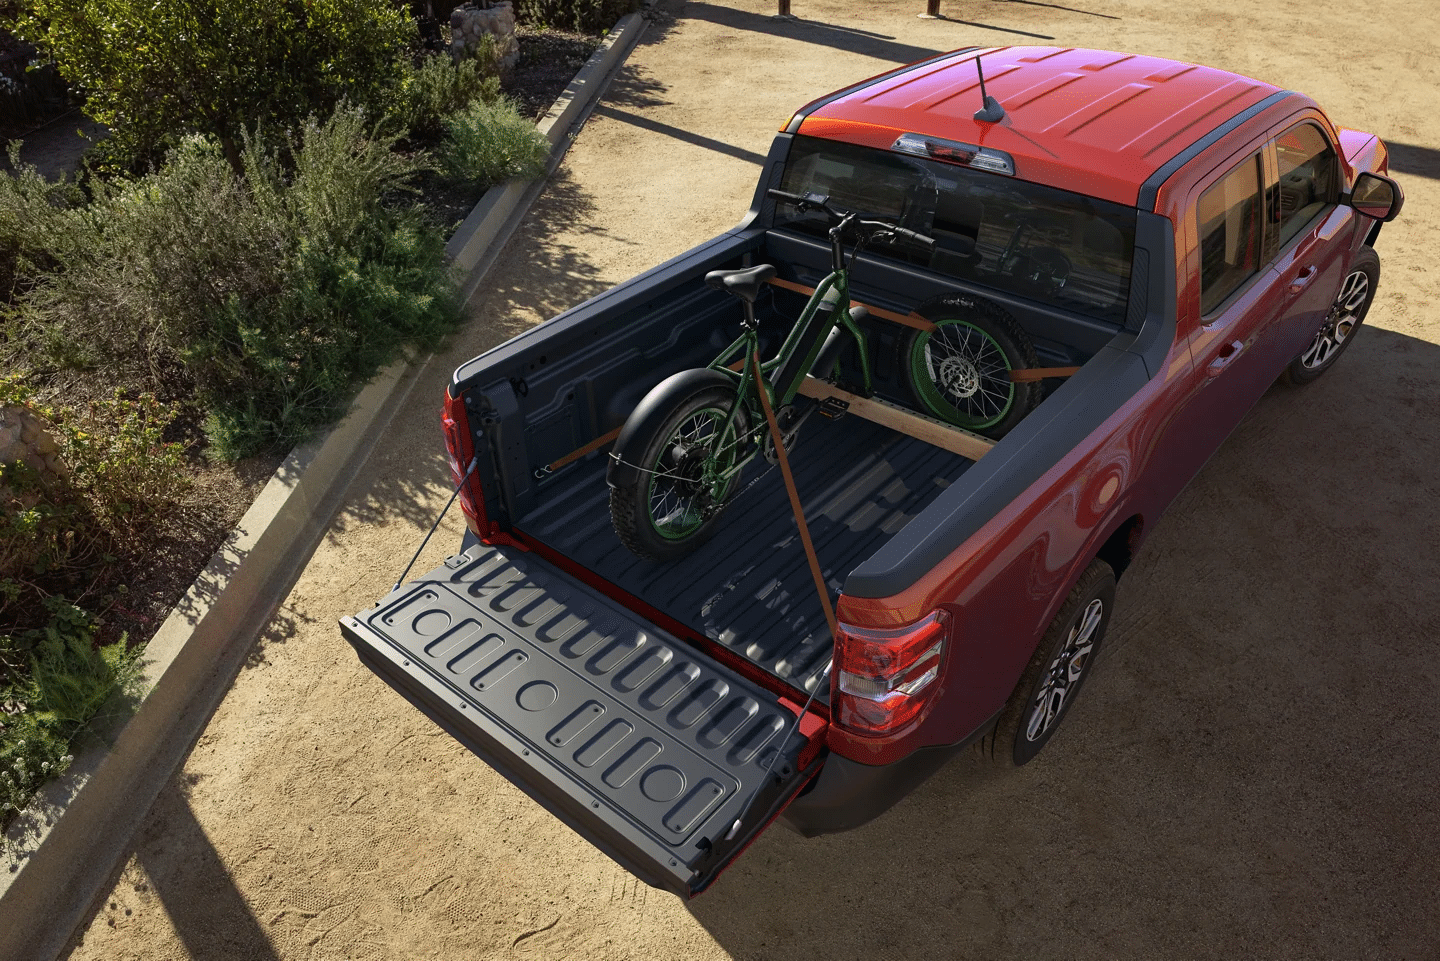 The Ford Maverick is equipped with a 4.5 ft Flexbed and adaptable tailgate.